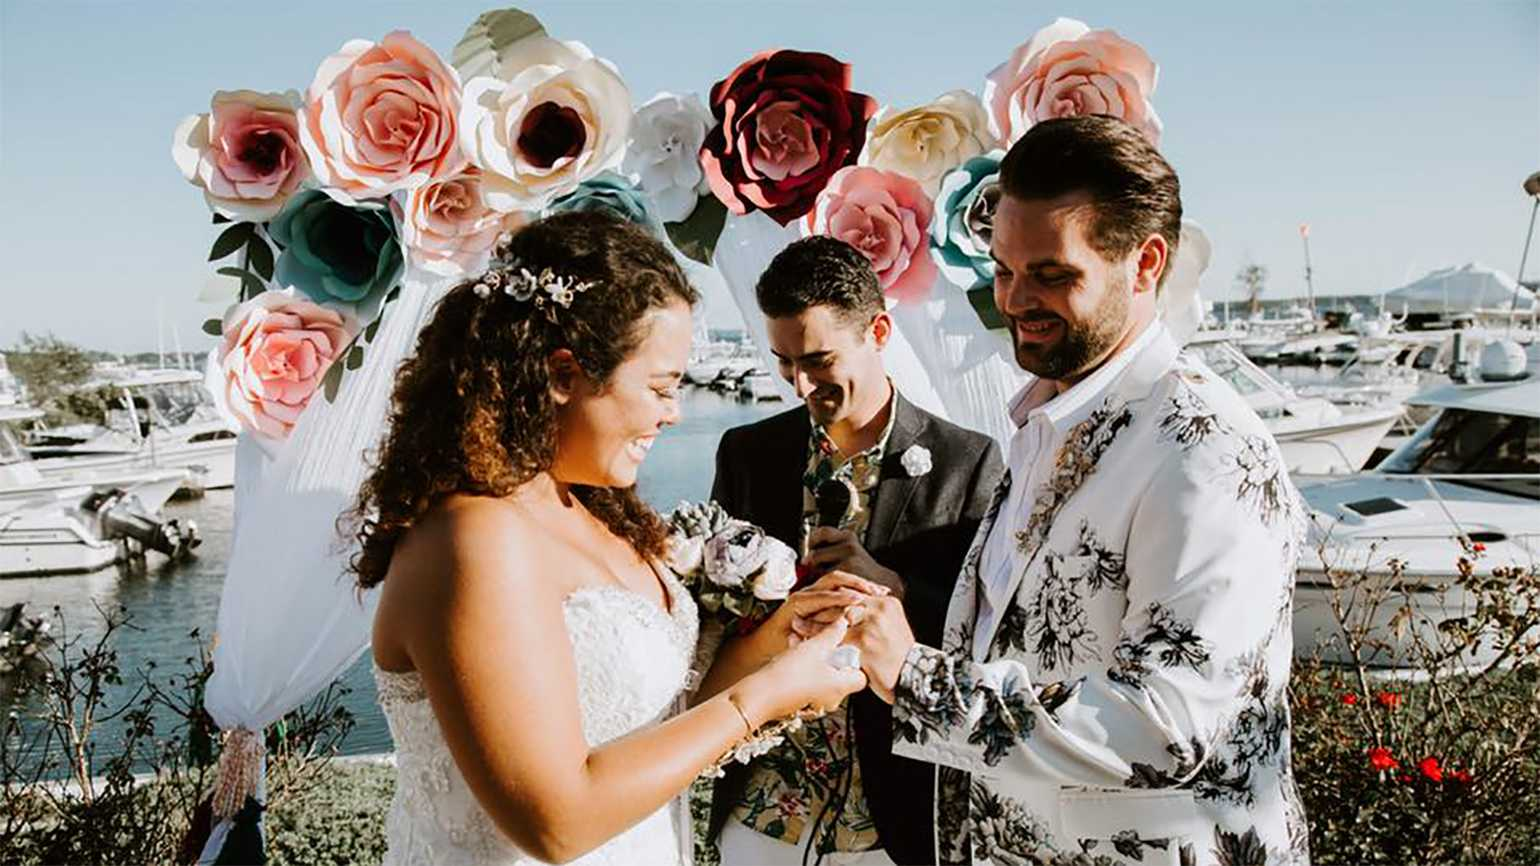 Keriann Otano and Dane Suarez's wedding photo